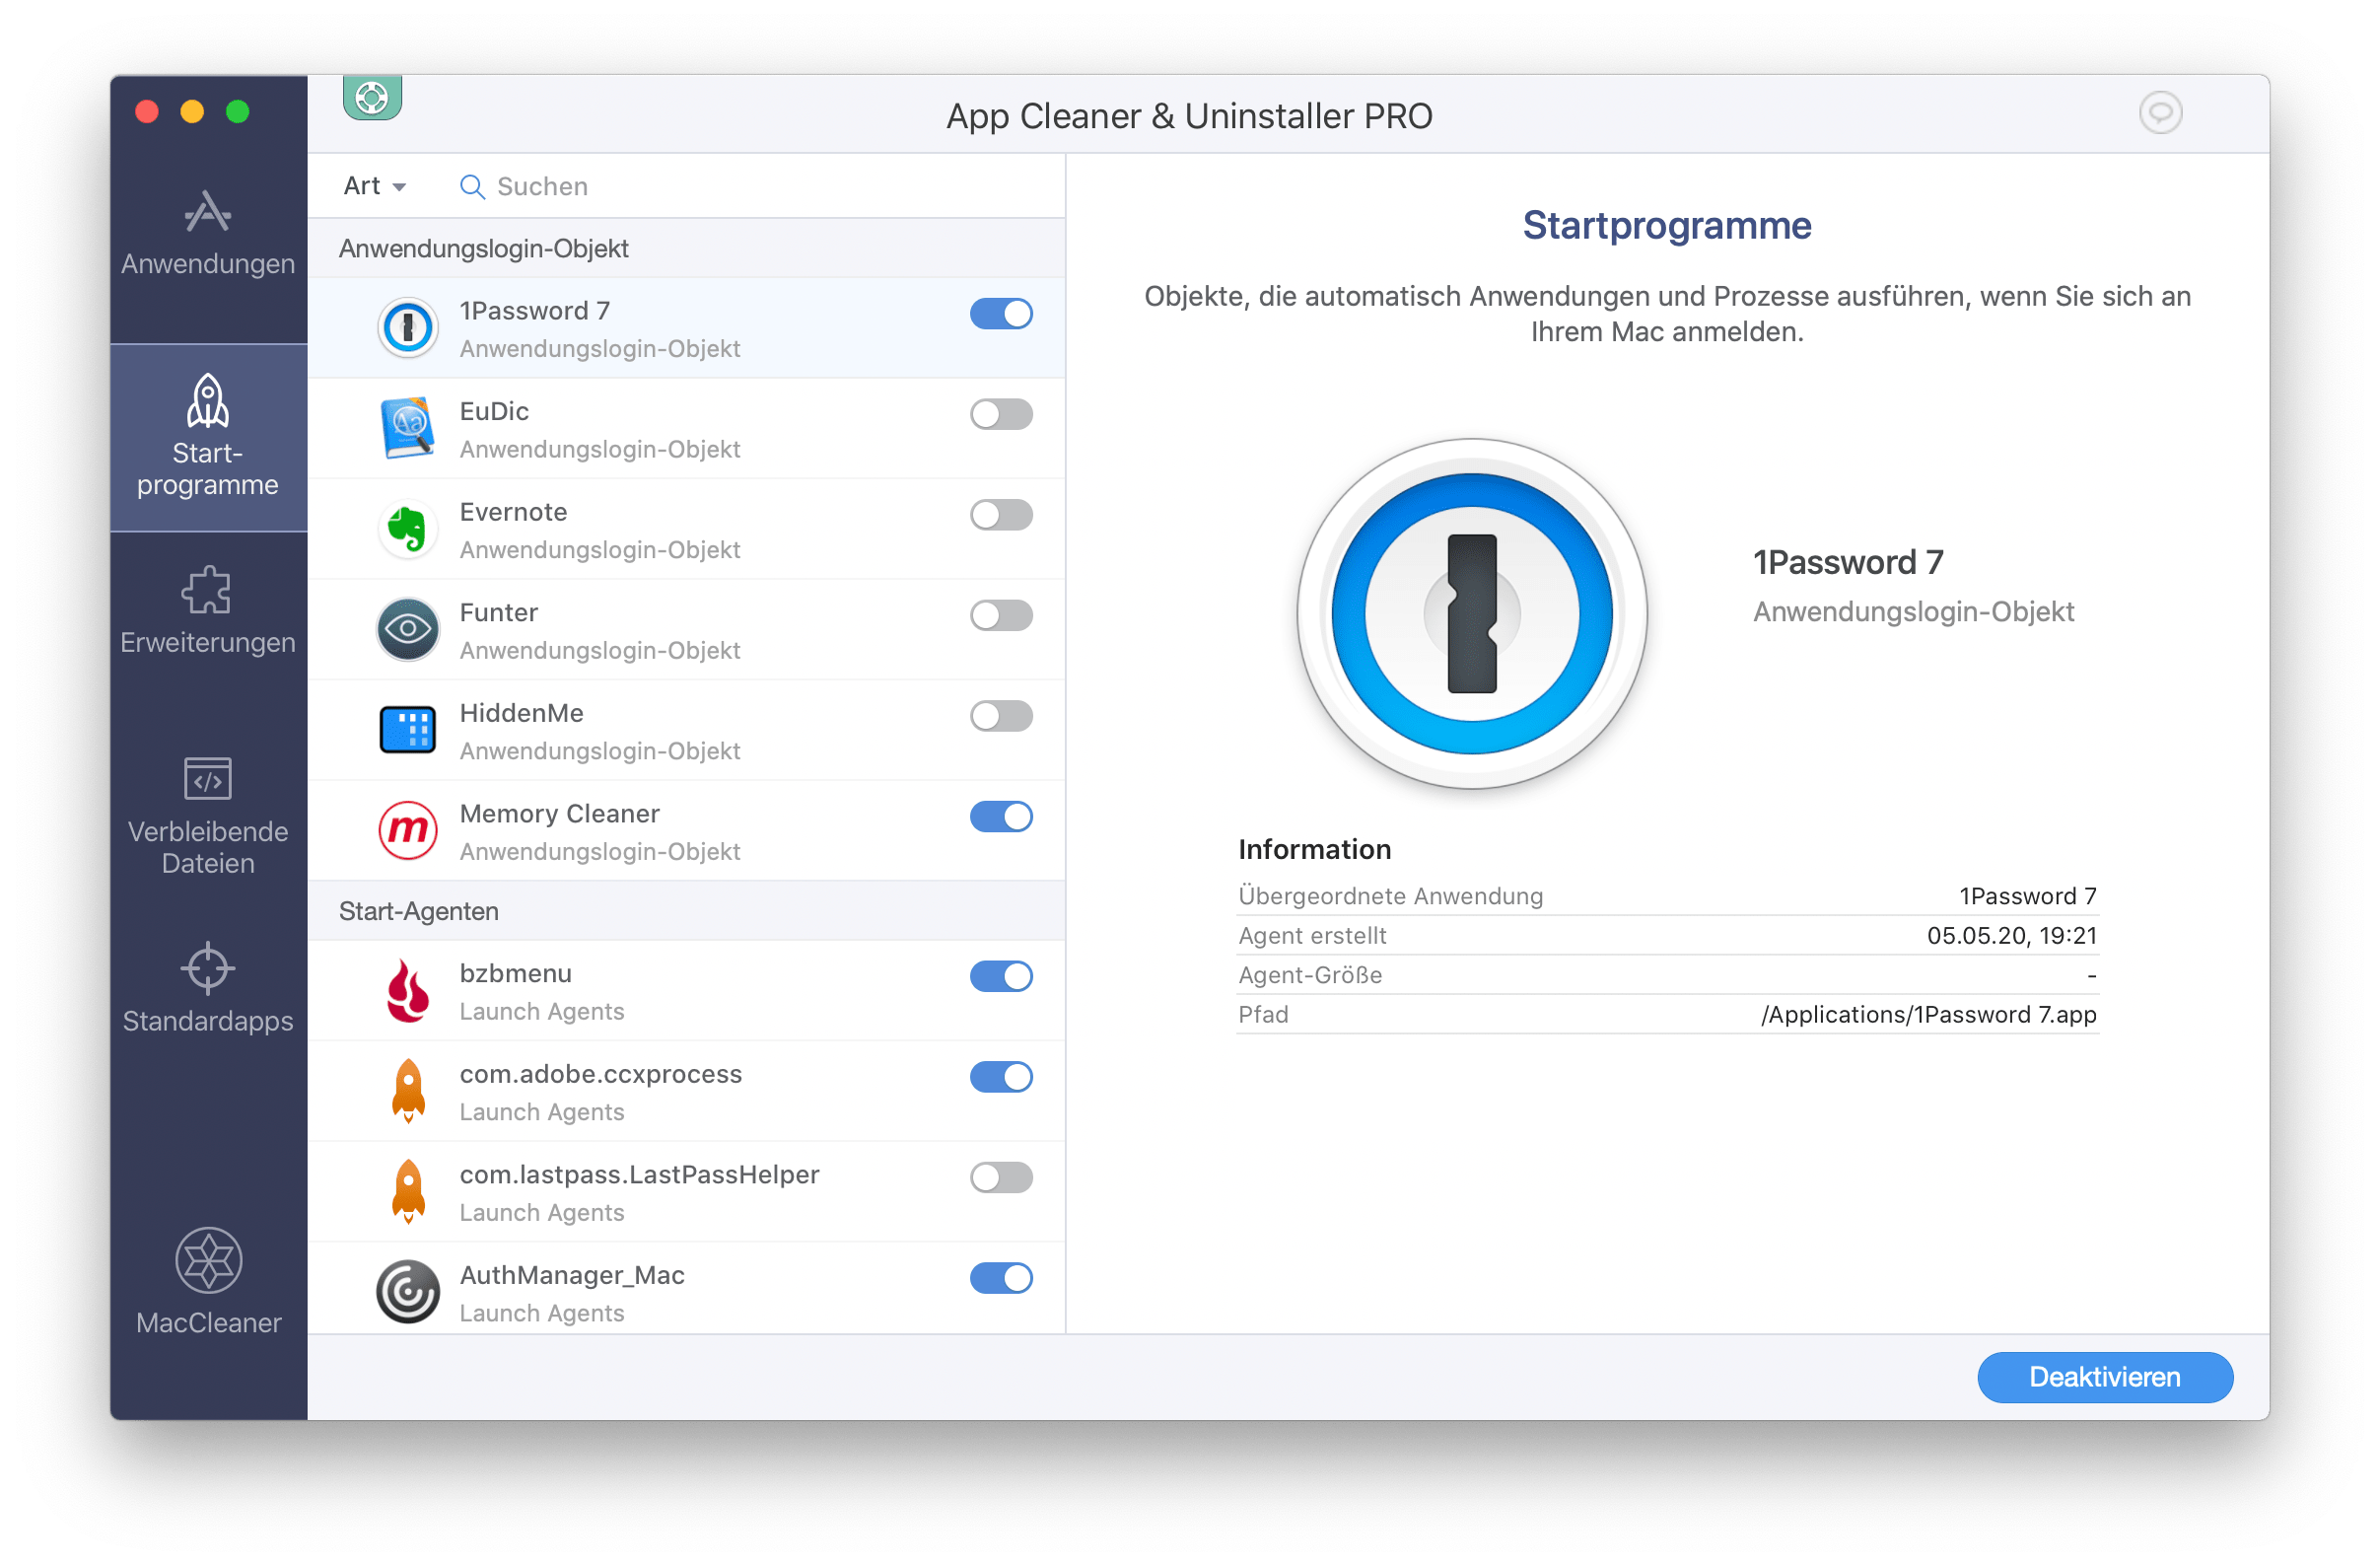 App Cleaner & Uninstaller-Fenster mit der Registerkarte Start-programme